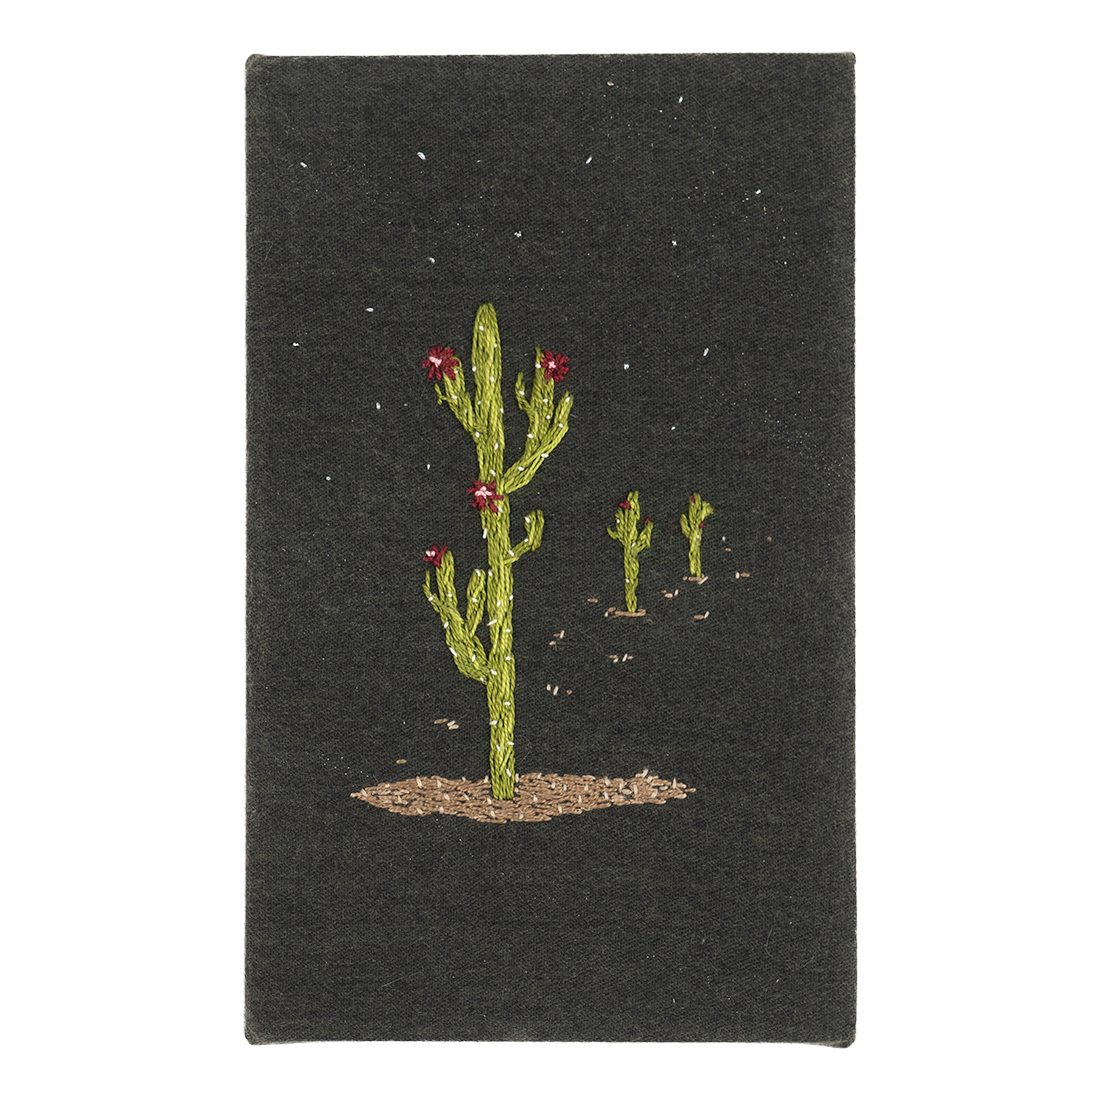 Saguaro in a Field Embroidery Art Piece